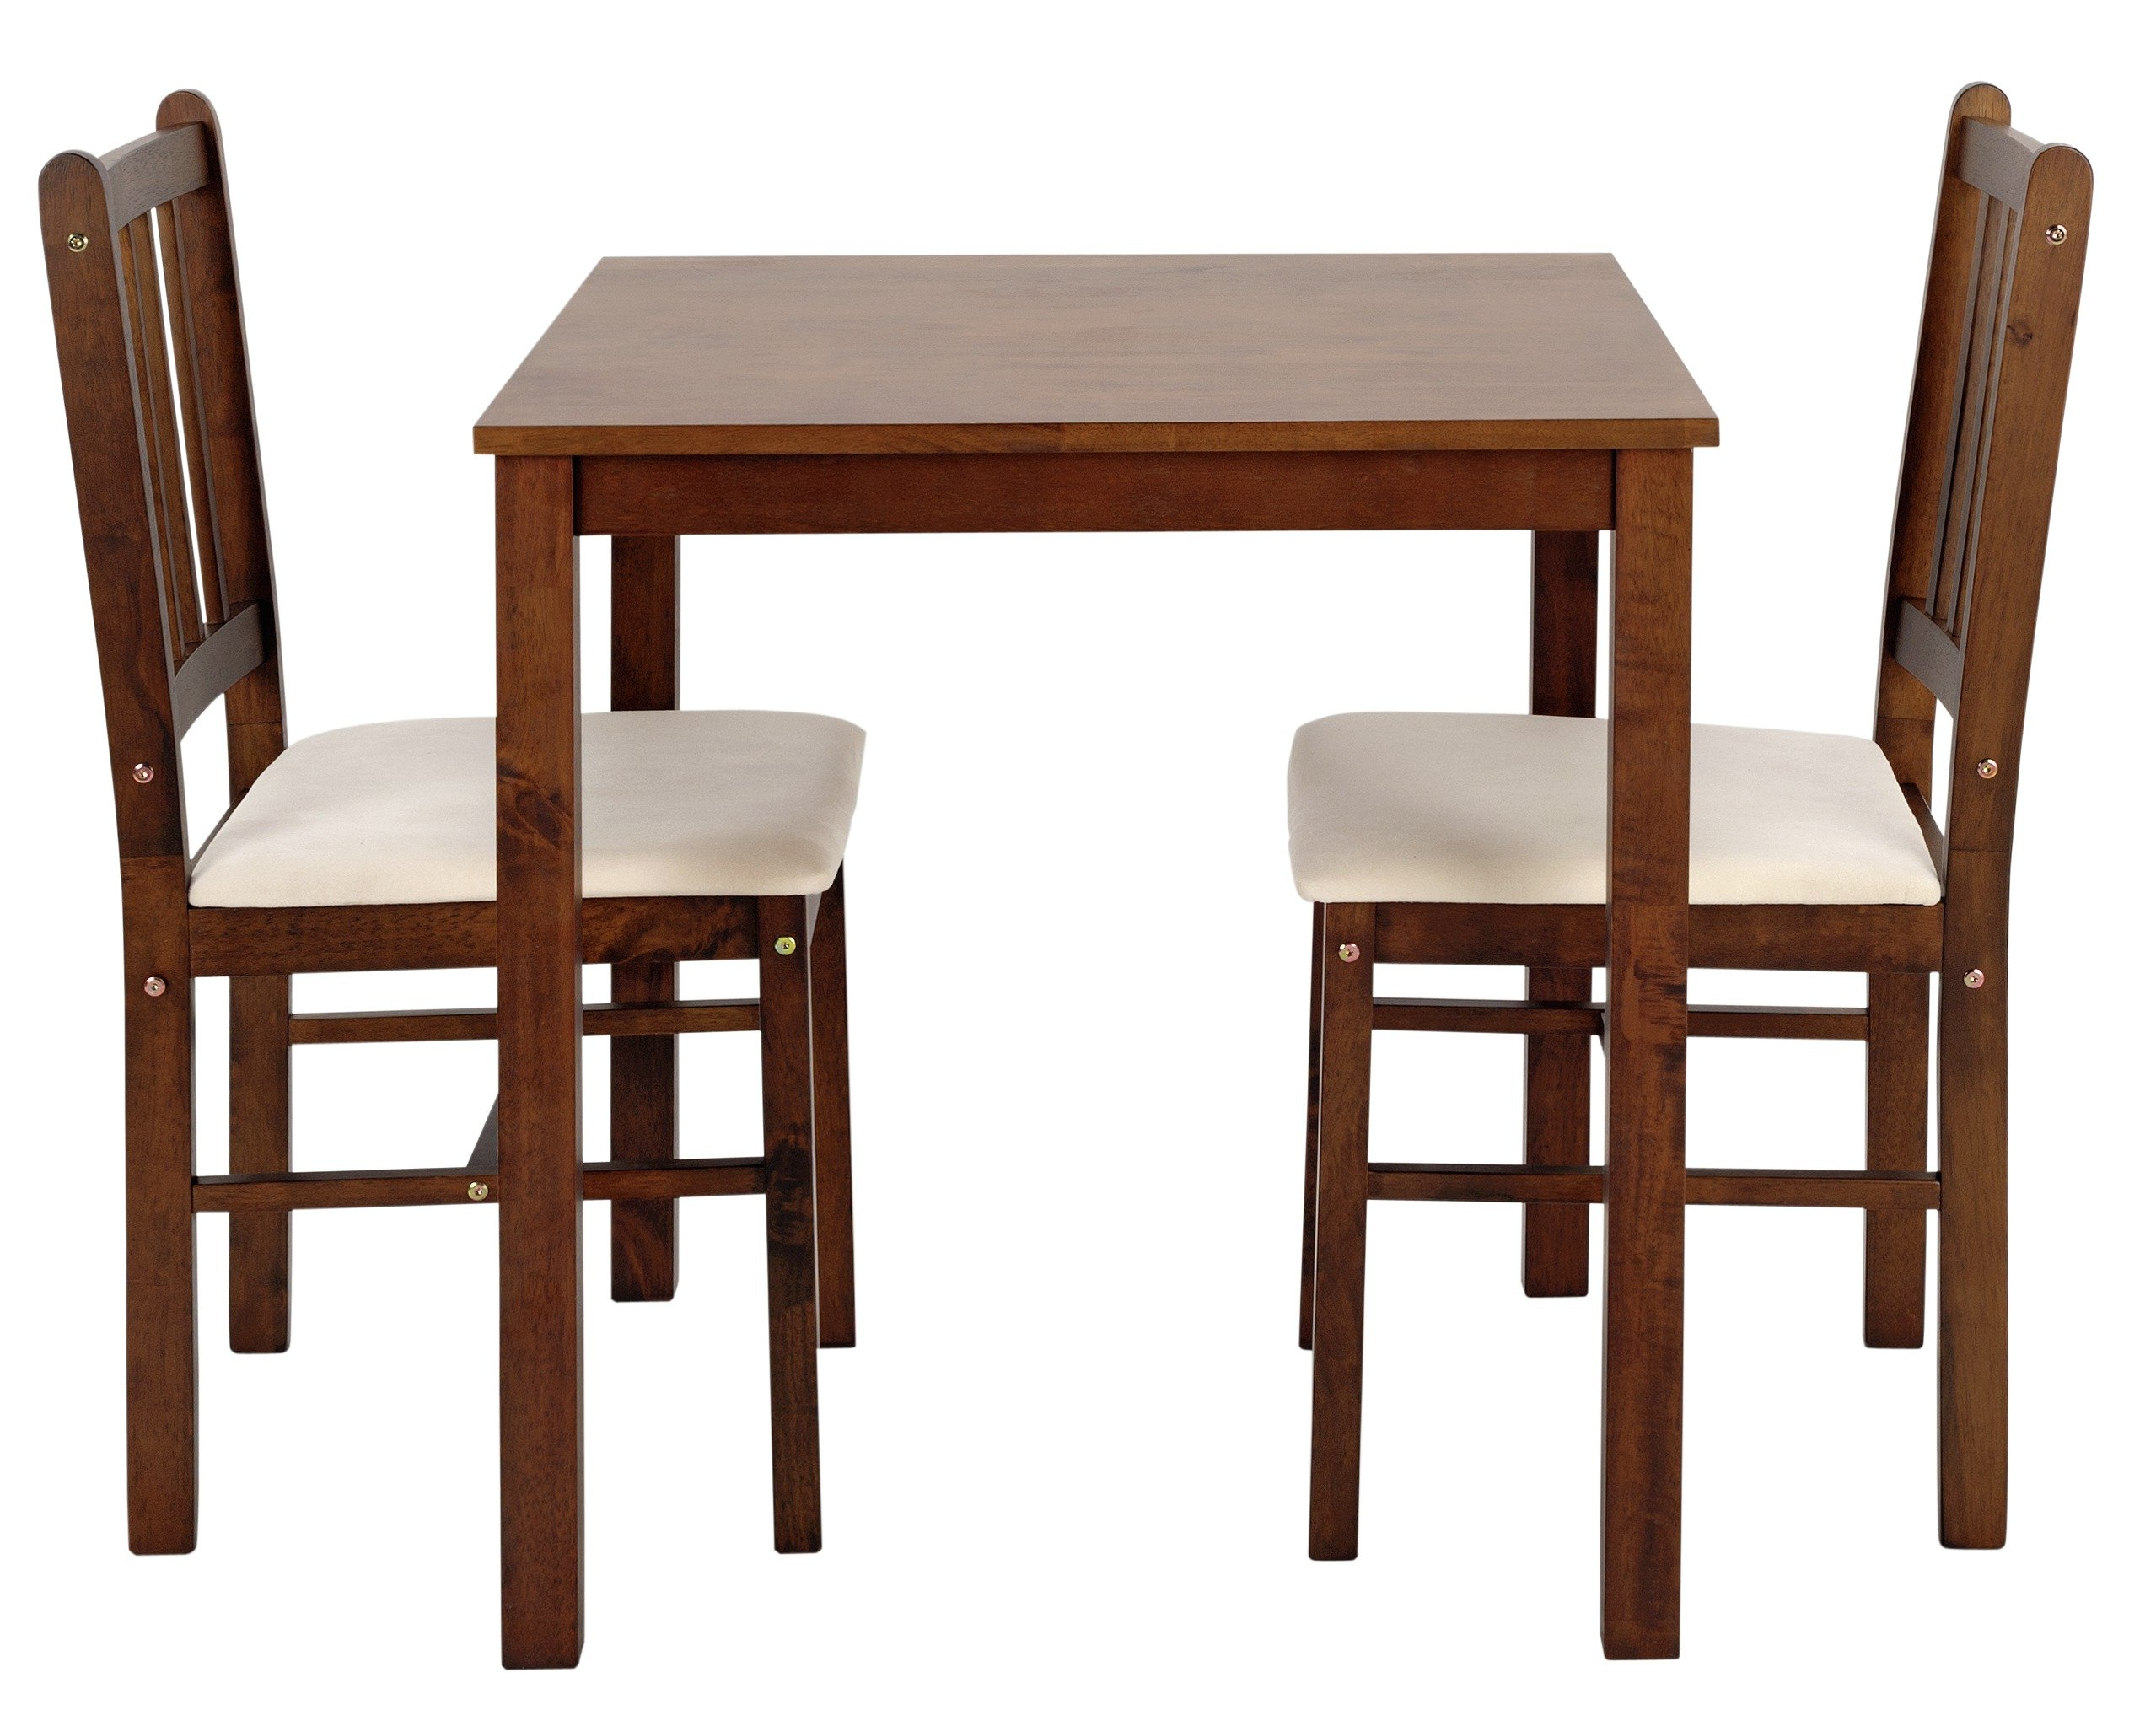 Buy HOME Kendall Solid Walnut Dining Table   Chairs - Cream at